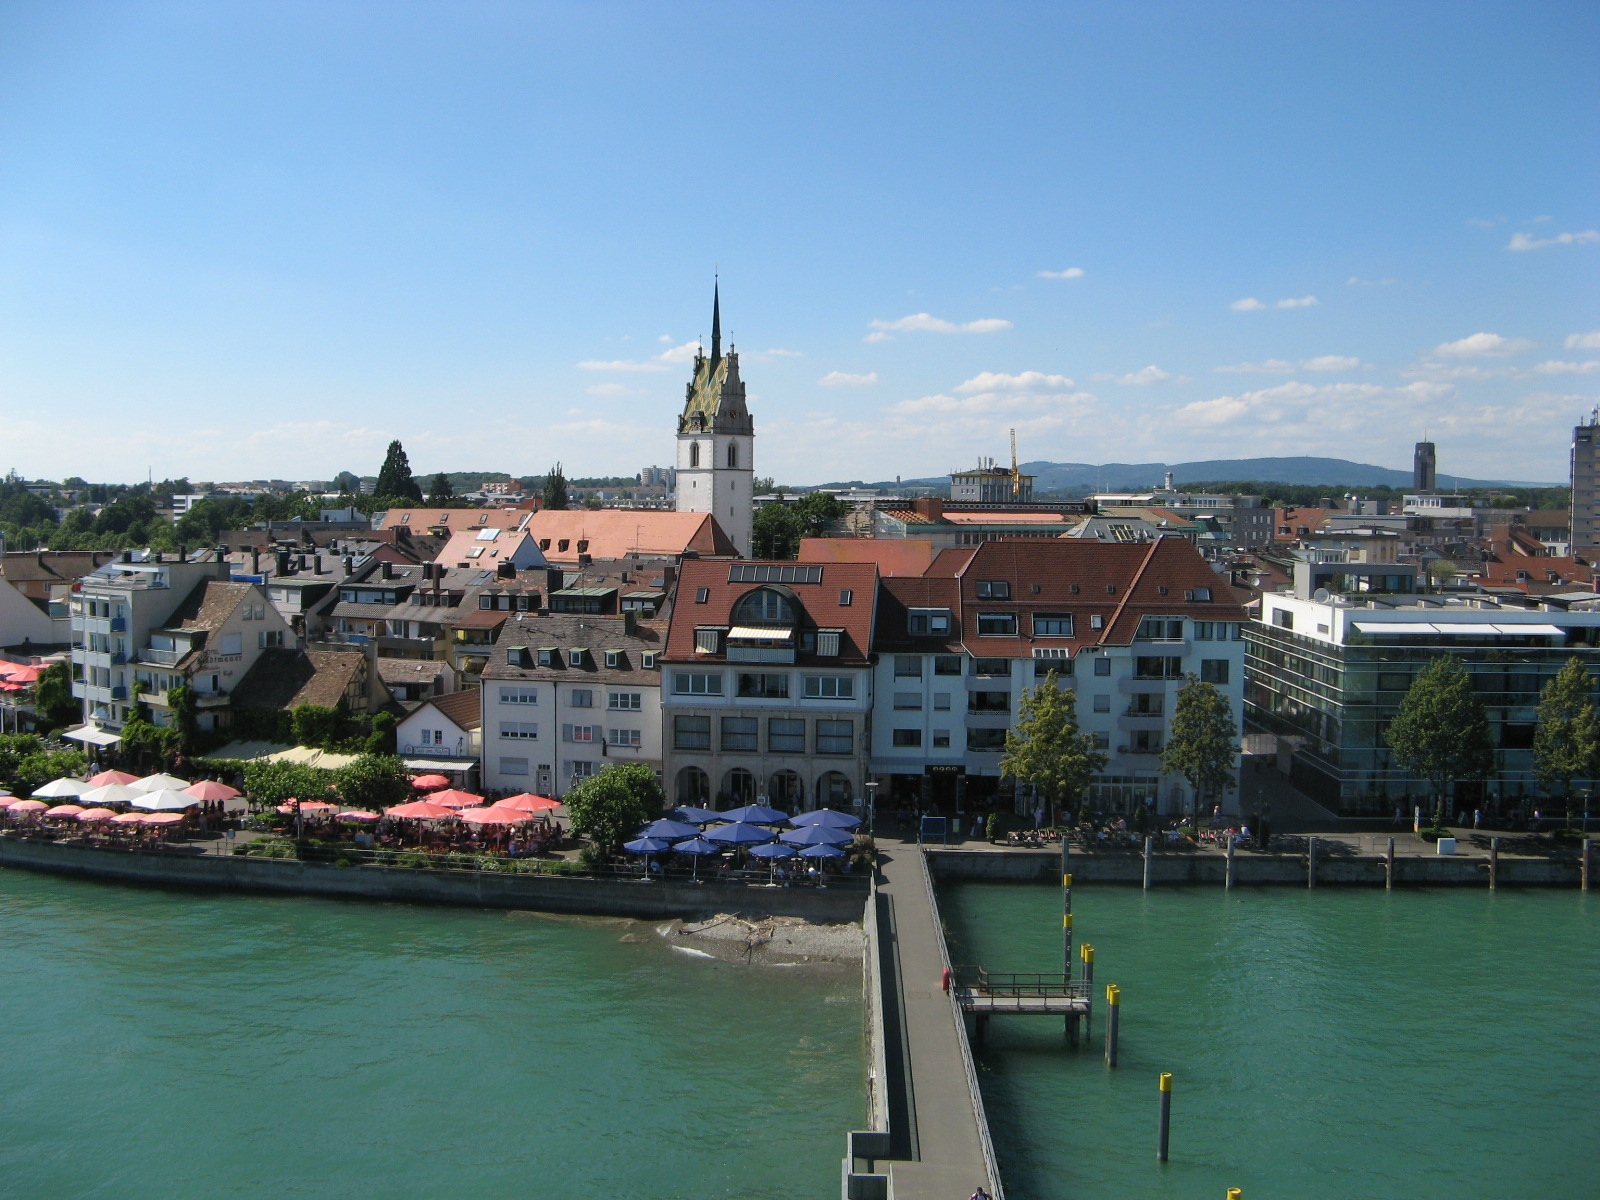 bodensee lake in germany thousand wonders. Black Bedroom Furniture Sets. Home Design Ideas